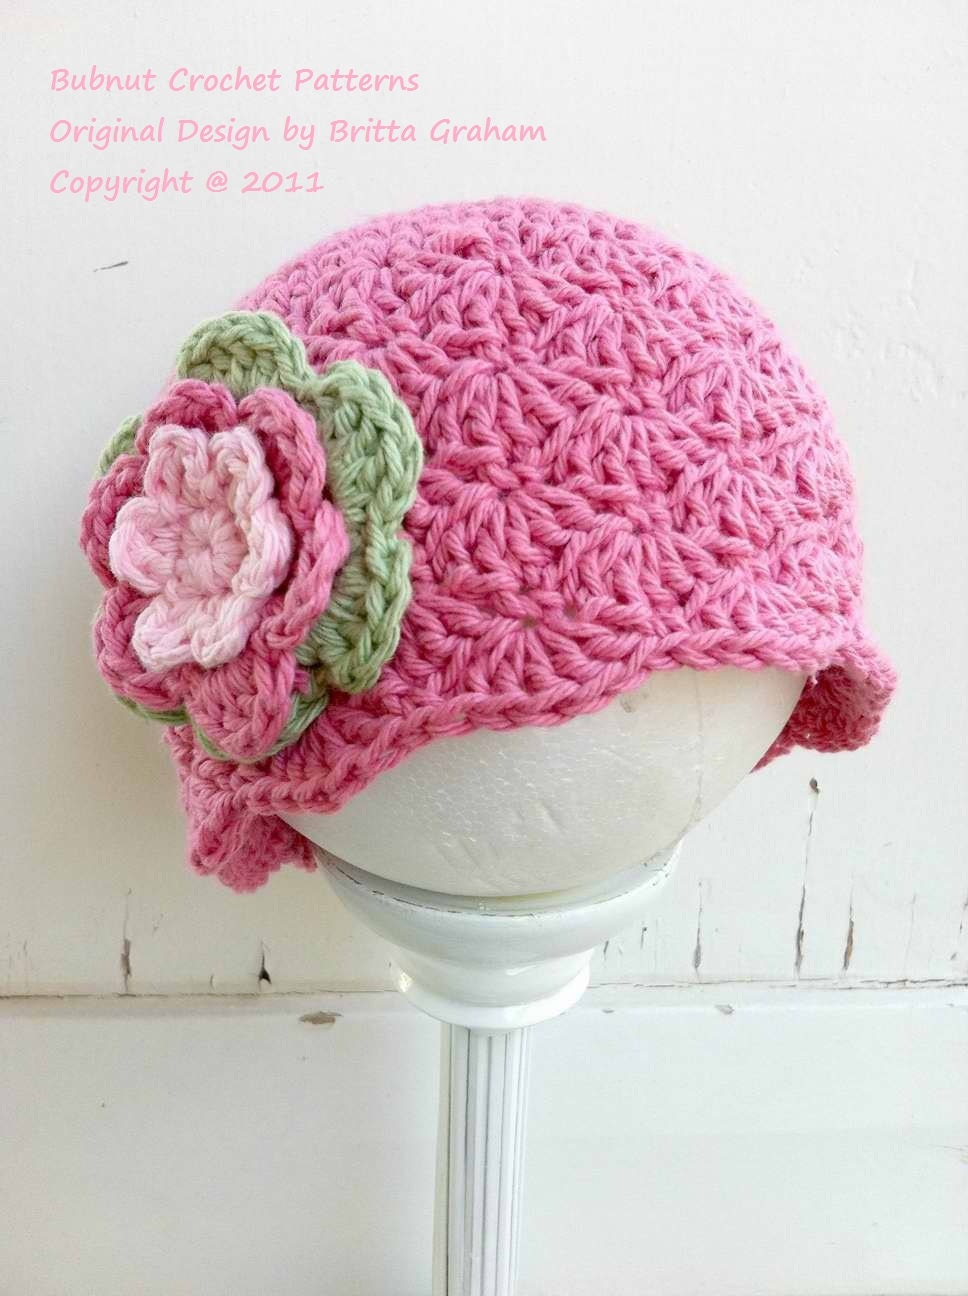 Crochet Stitches Baby Hats : Crochet Hat Pattern Shell Stitch Cap Crochet by bubnutPatterns